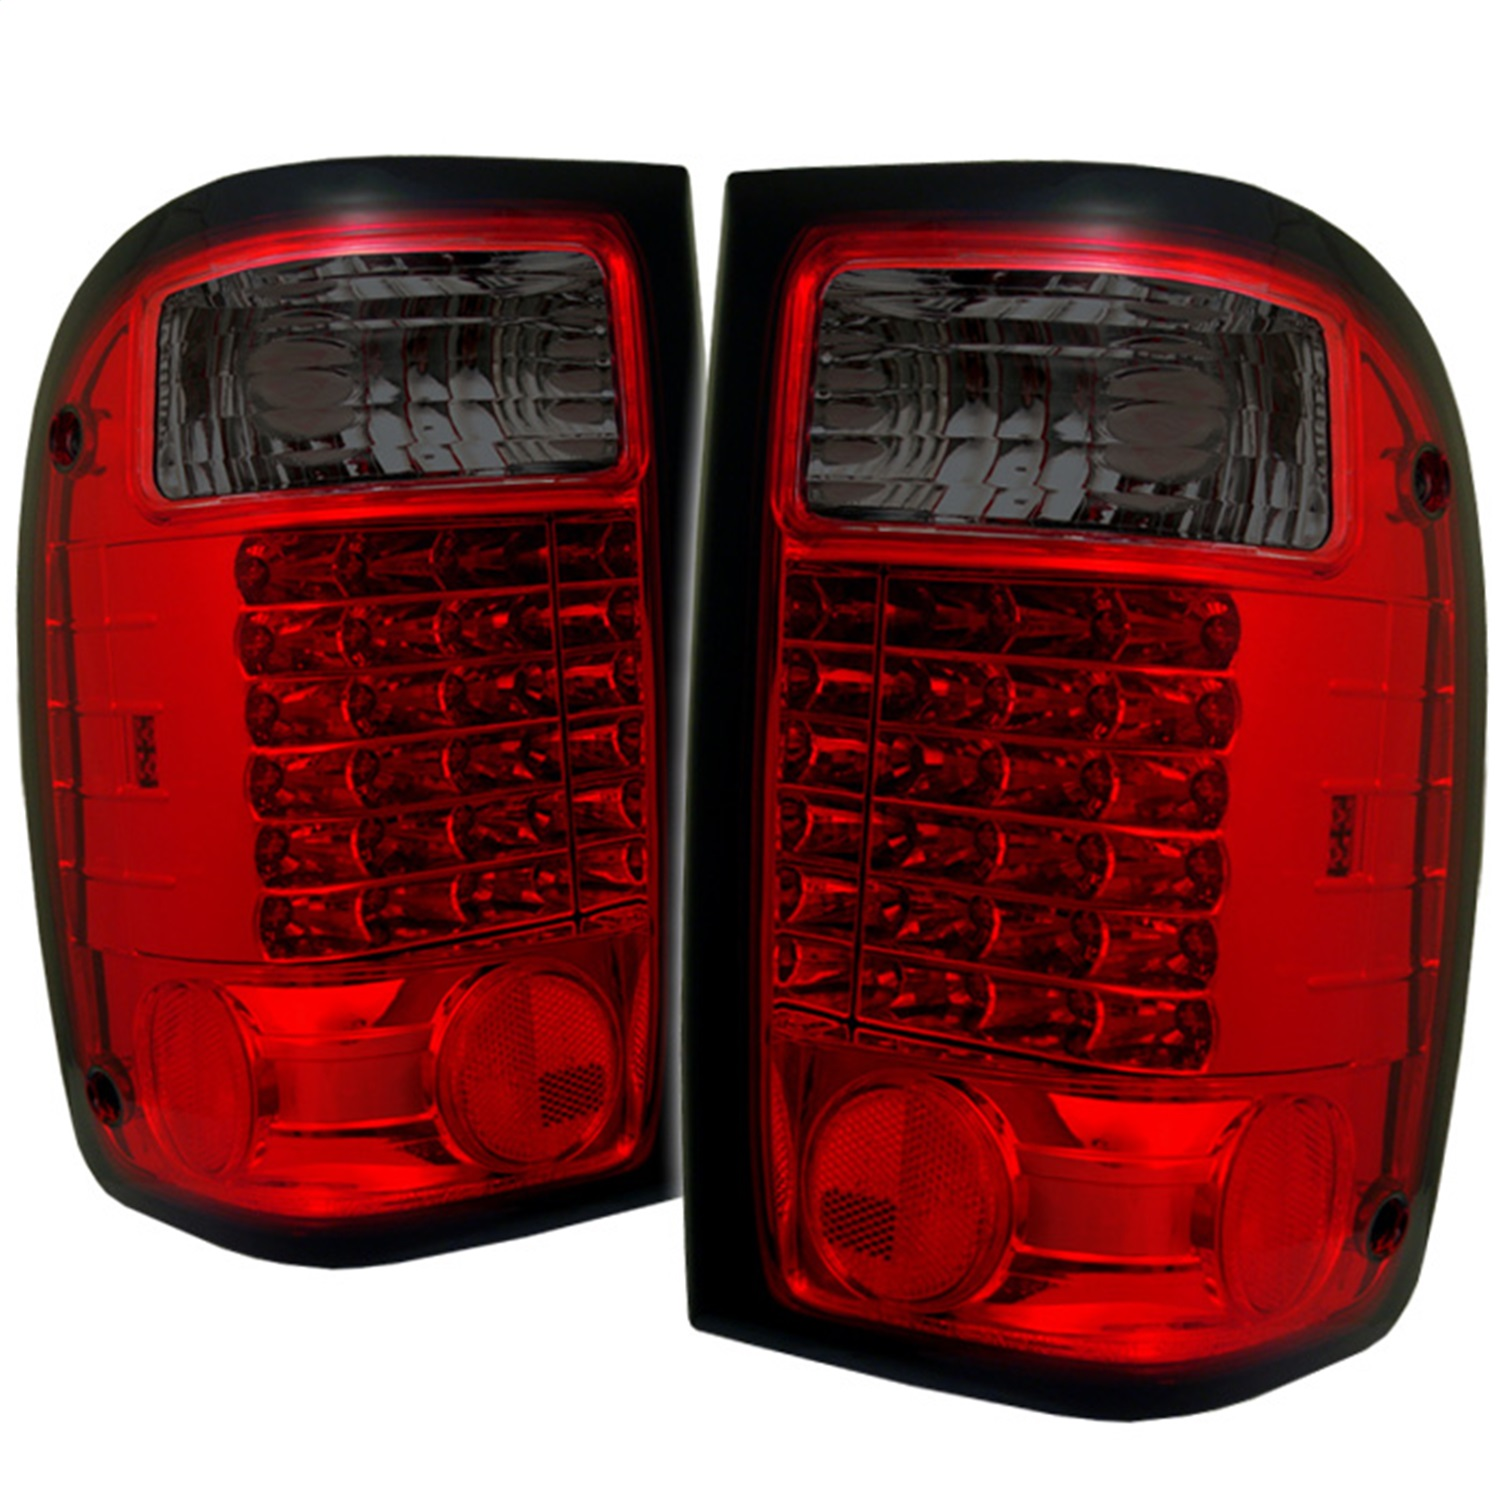 Spyder Auto 5003867 LED Tail Lights Fits 01-05 Ranger